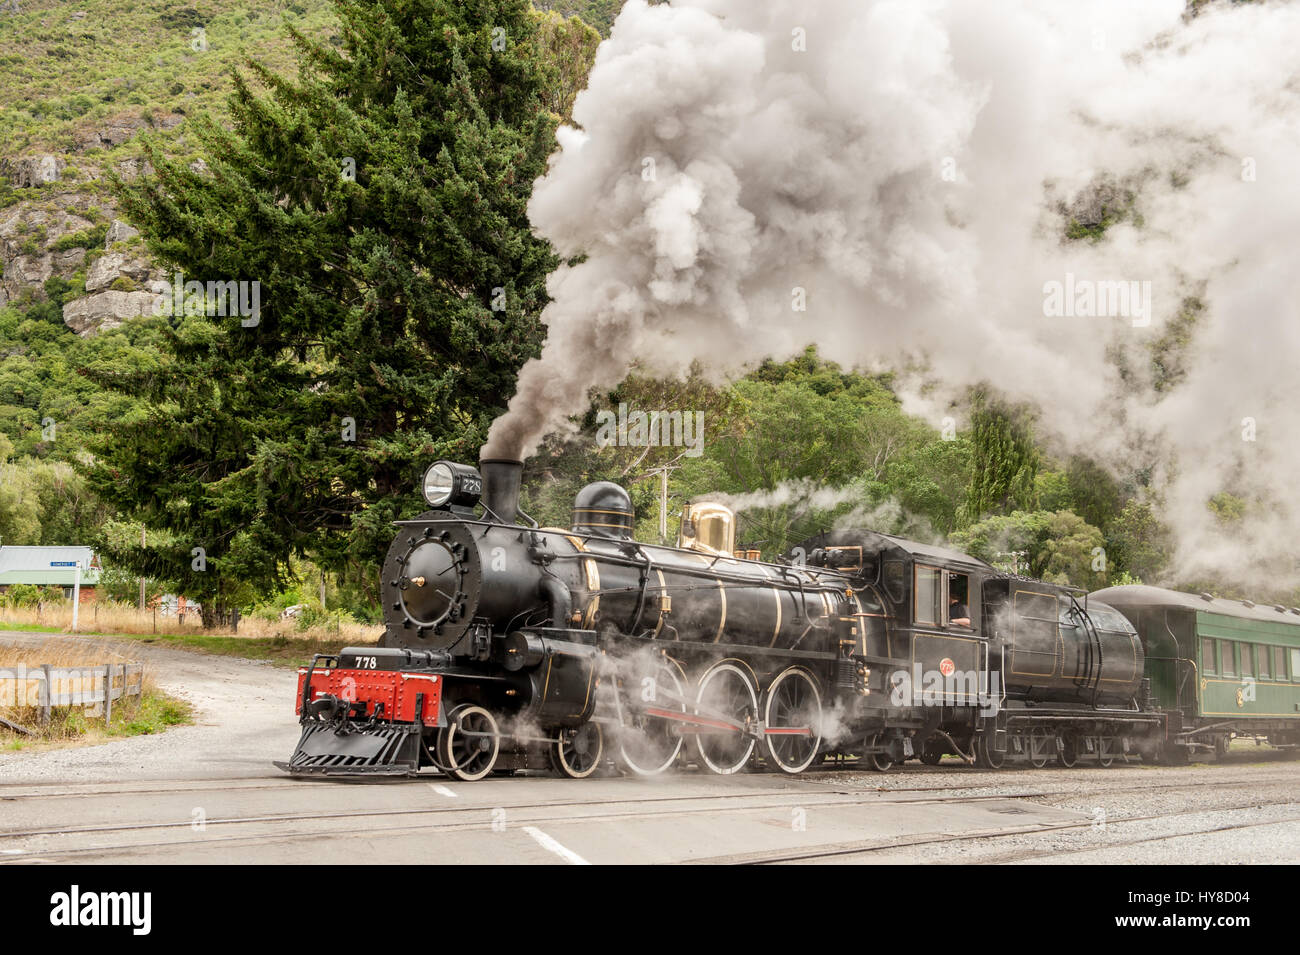 Kingston Flyer in Kingston, New Zealand. This well-preserved steam train from the 1870's , previously a popular Stock Photo